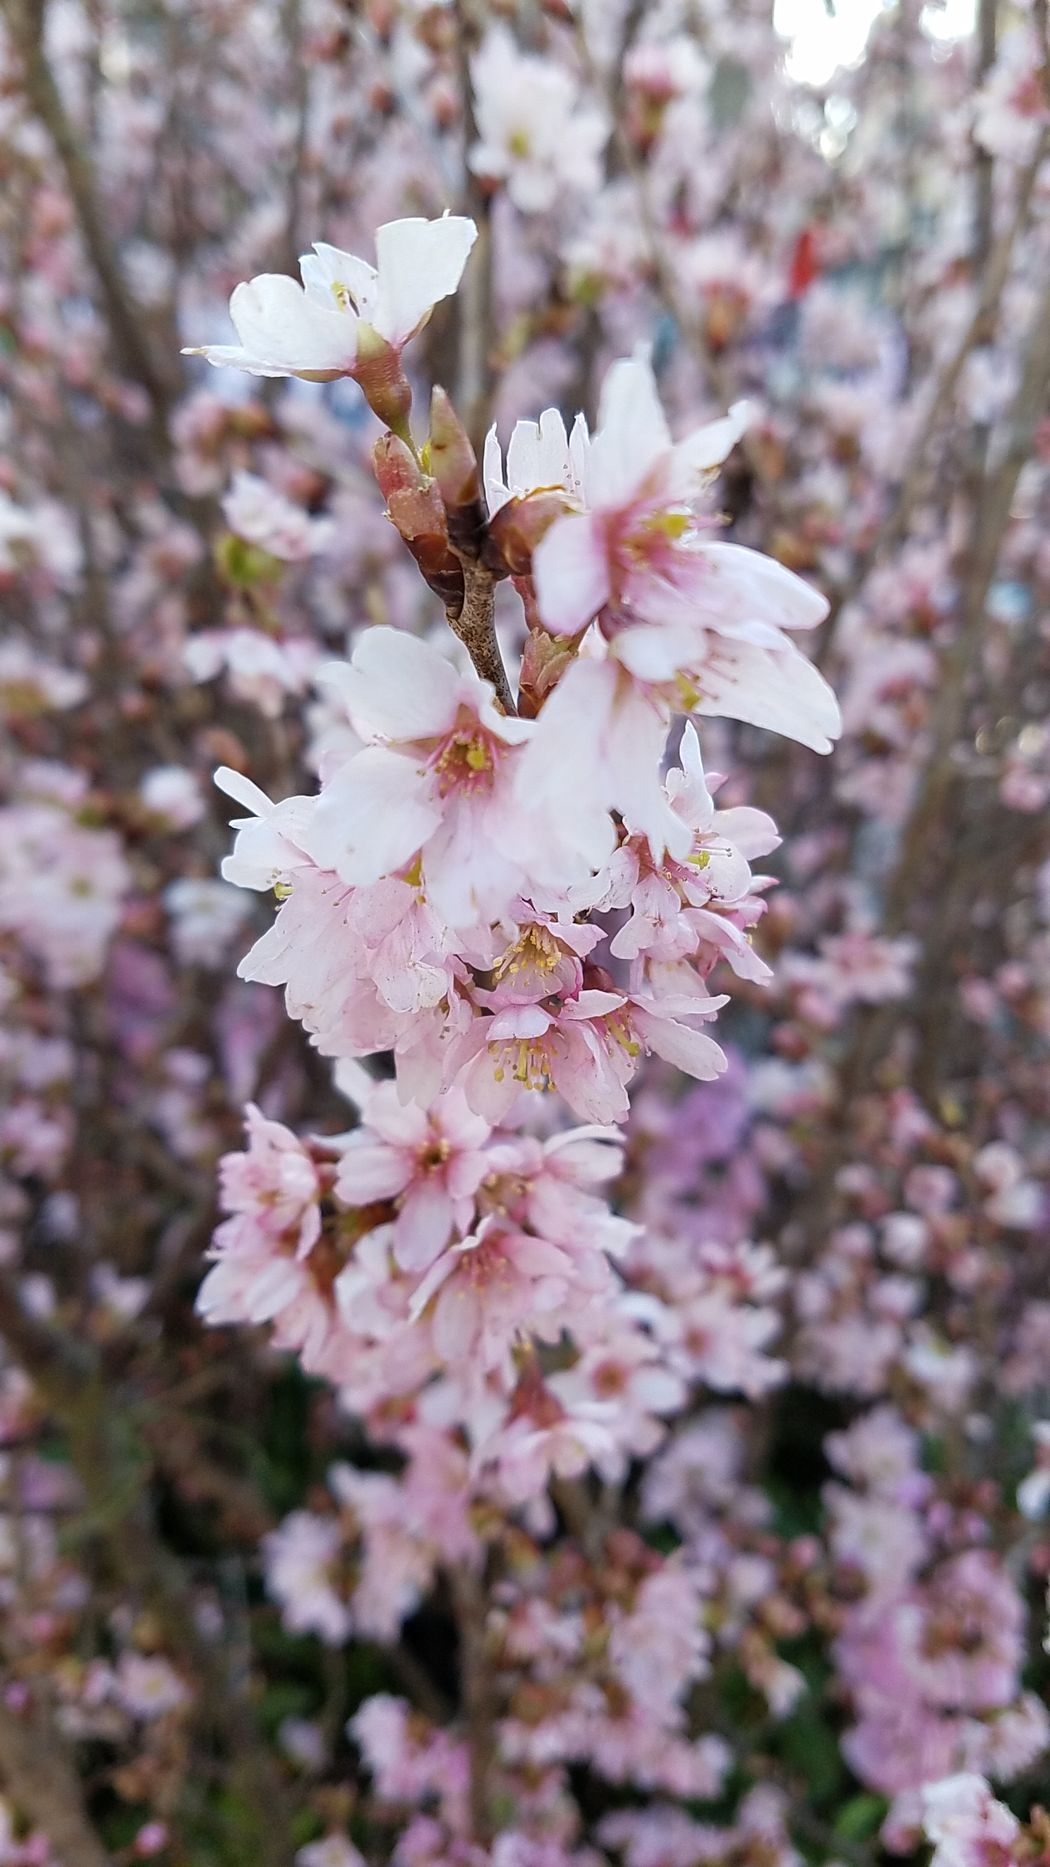 Flower Nature Beauty In Nature Blossom Tree Plum Blossoms Plumtrees Plum Flower Flower Head 花 Flowerslovers Flowers Tokyo Photography 梅の花